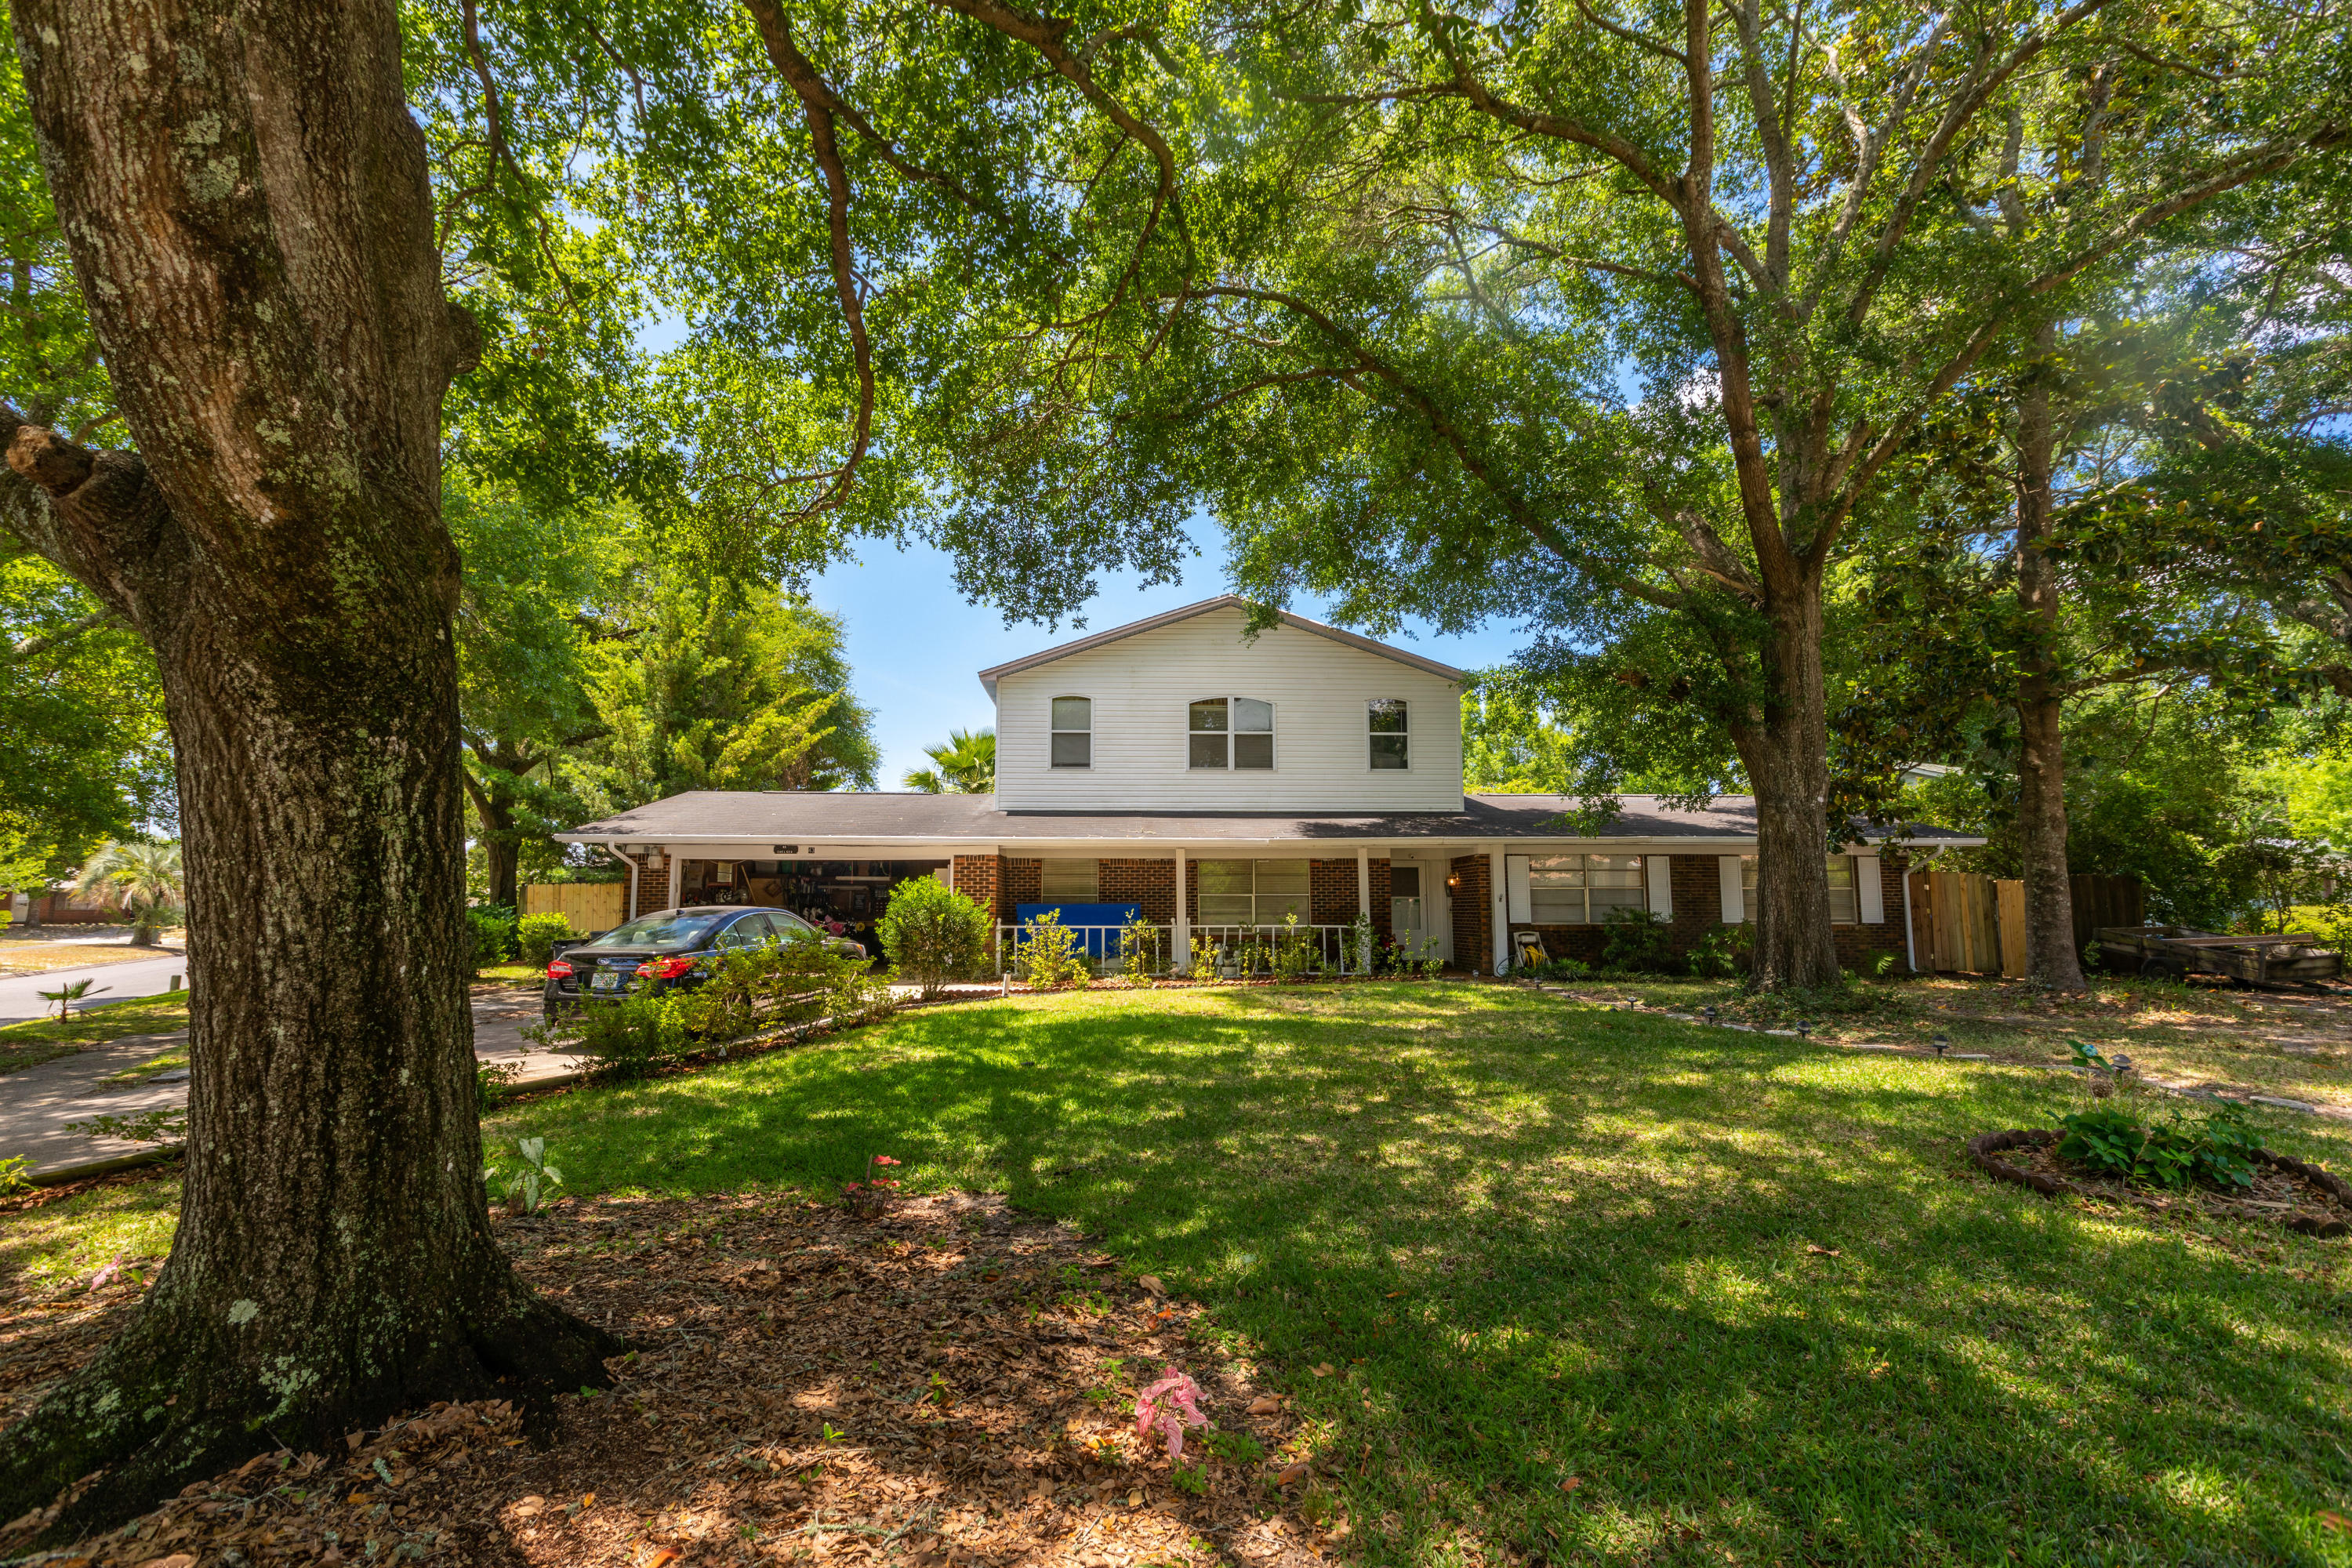 This family friendly 4 bedroom, 3 full bath, pool home sits on a level corner lot in the heart of th